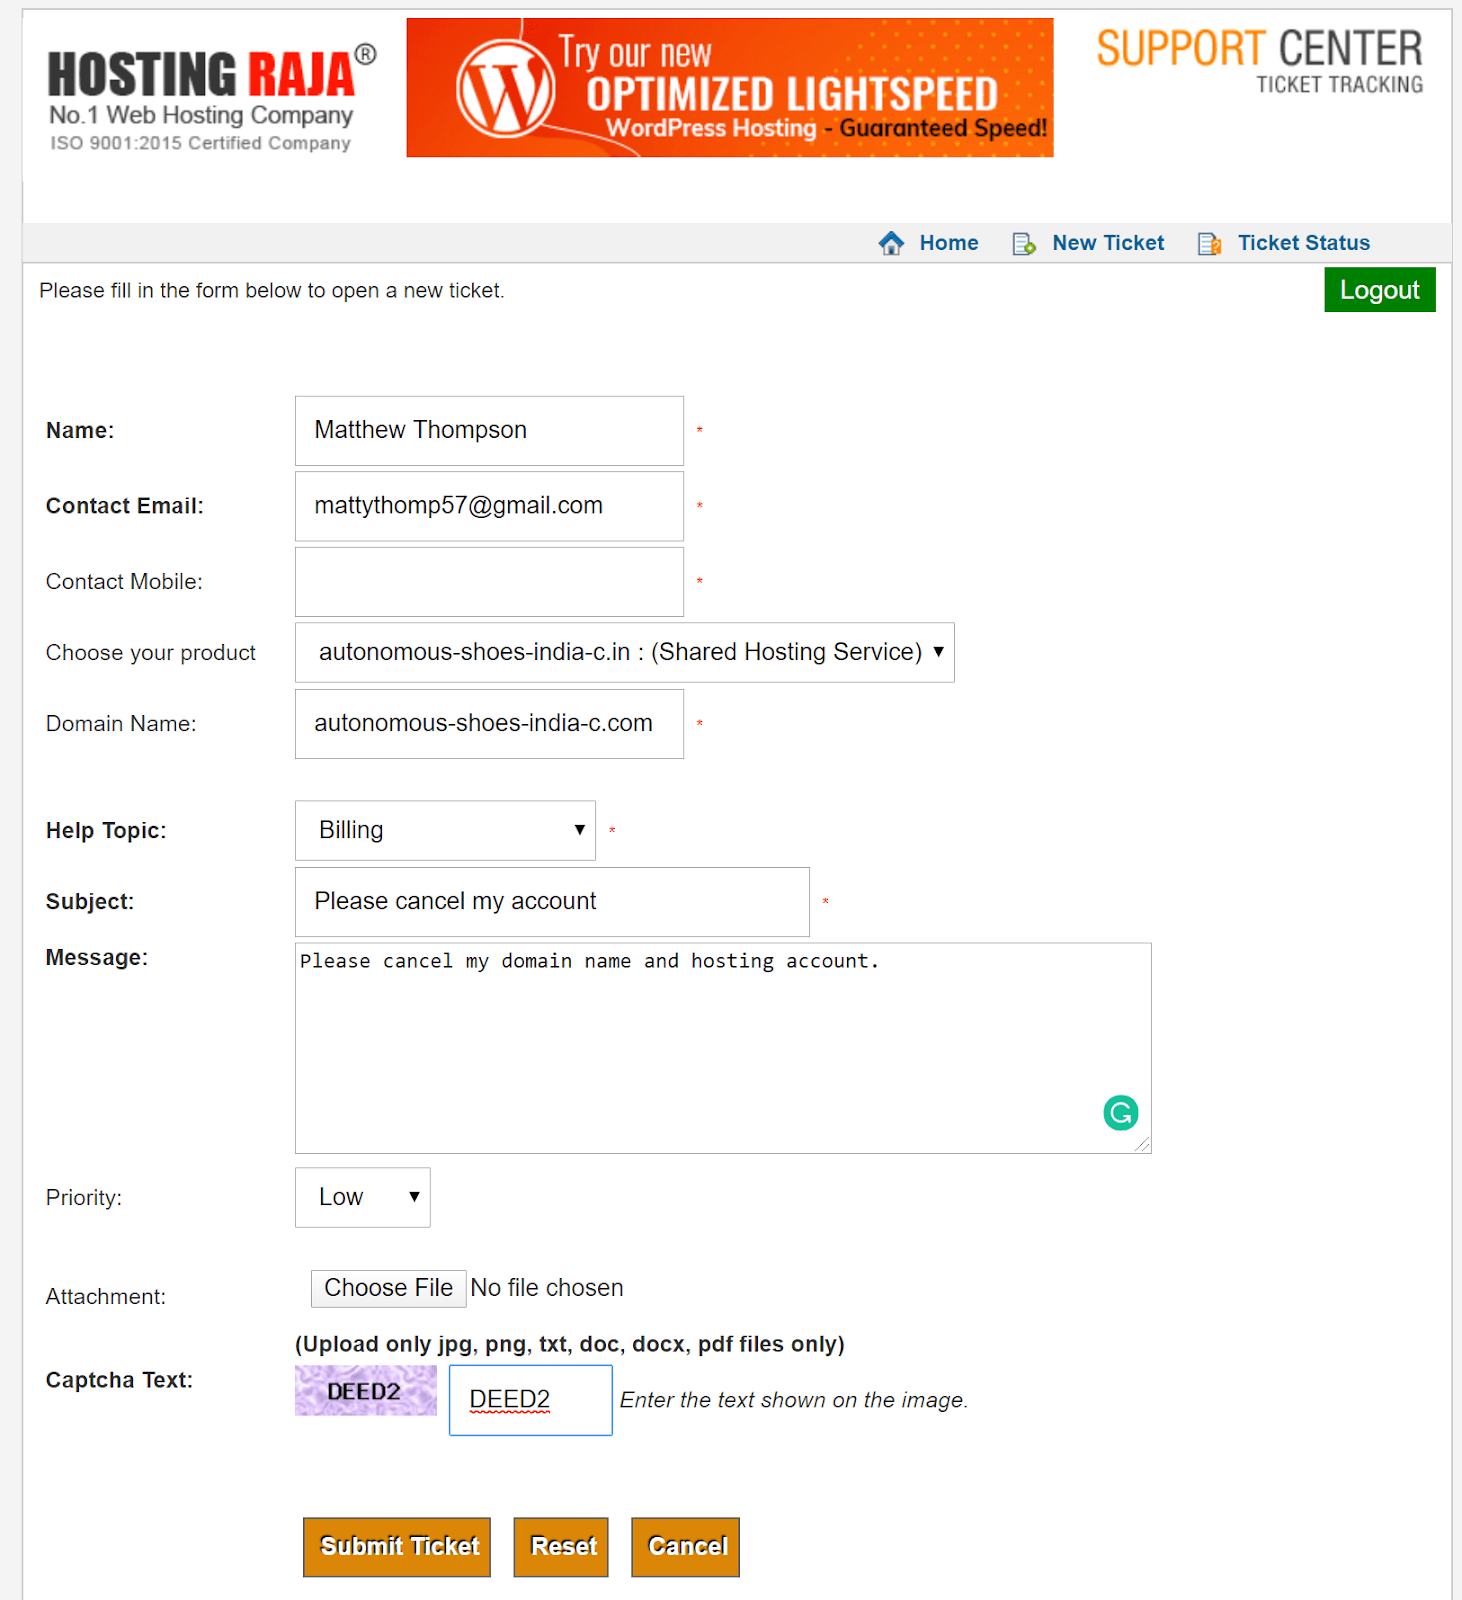 HostingRaja support ticket form